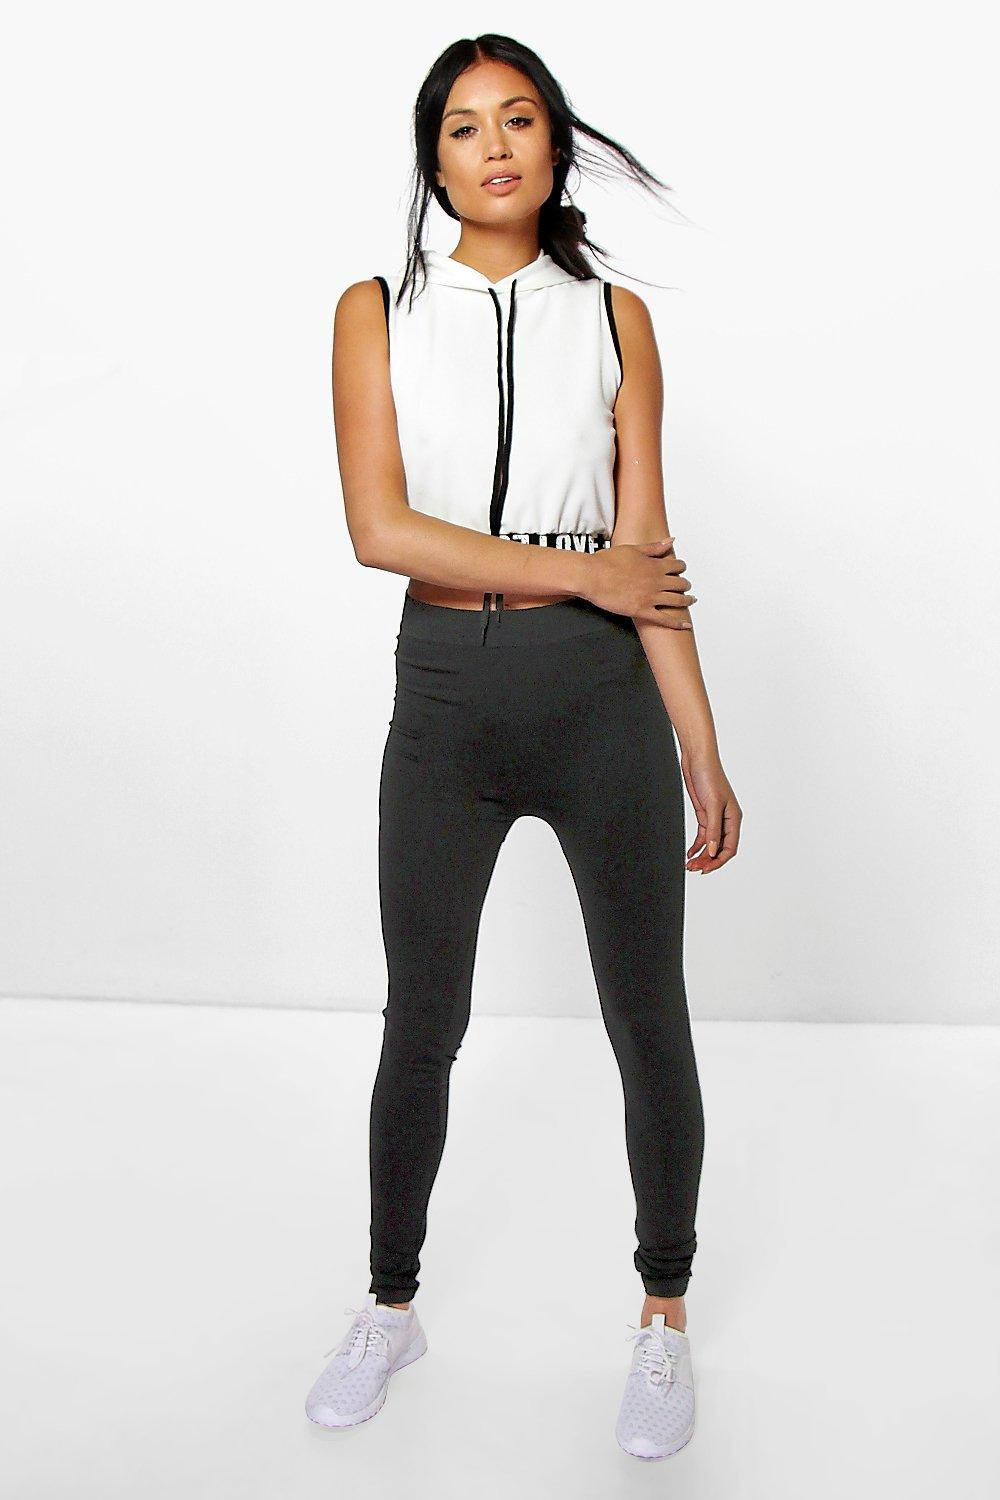 Valencia Basic Seamless High Waist Leggings black